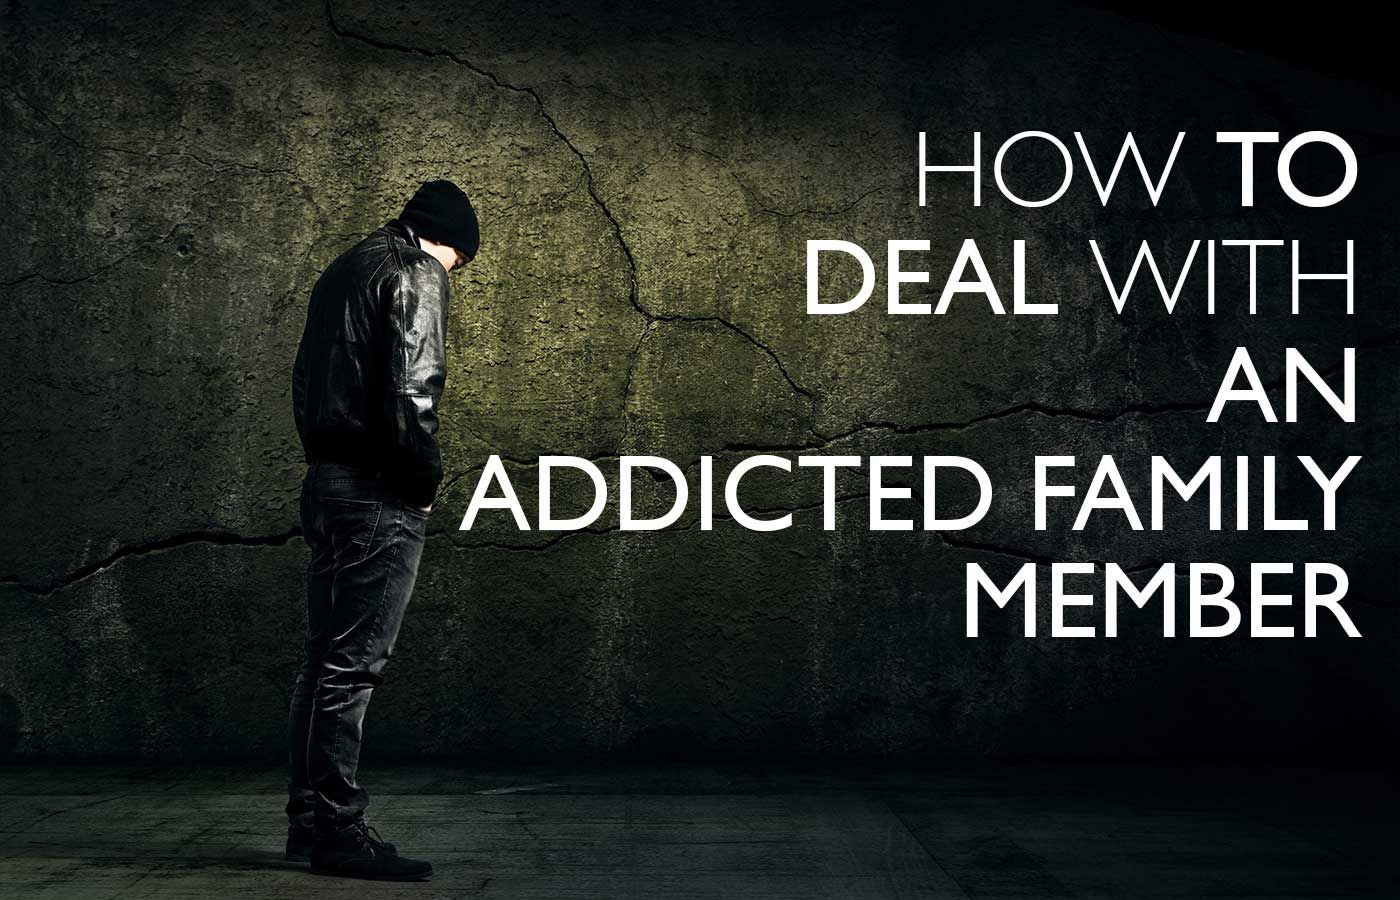 how to deal with an addicted family member | addiction and the